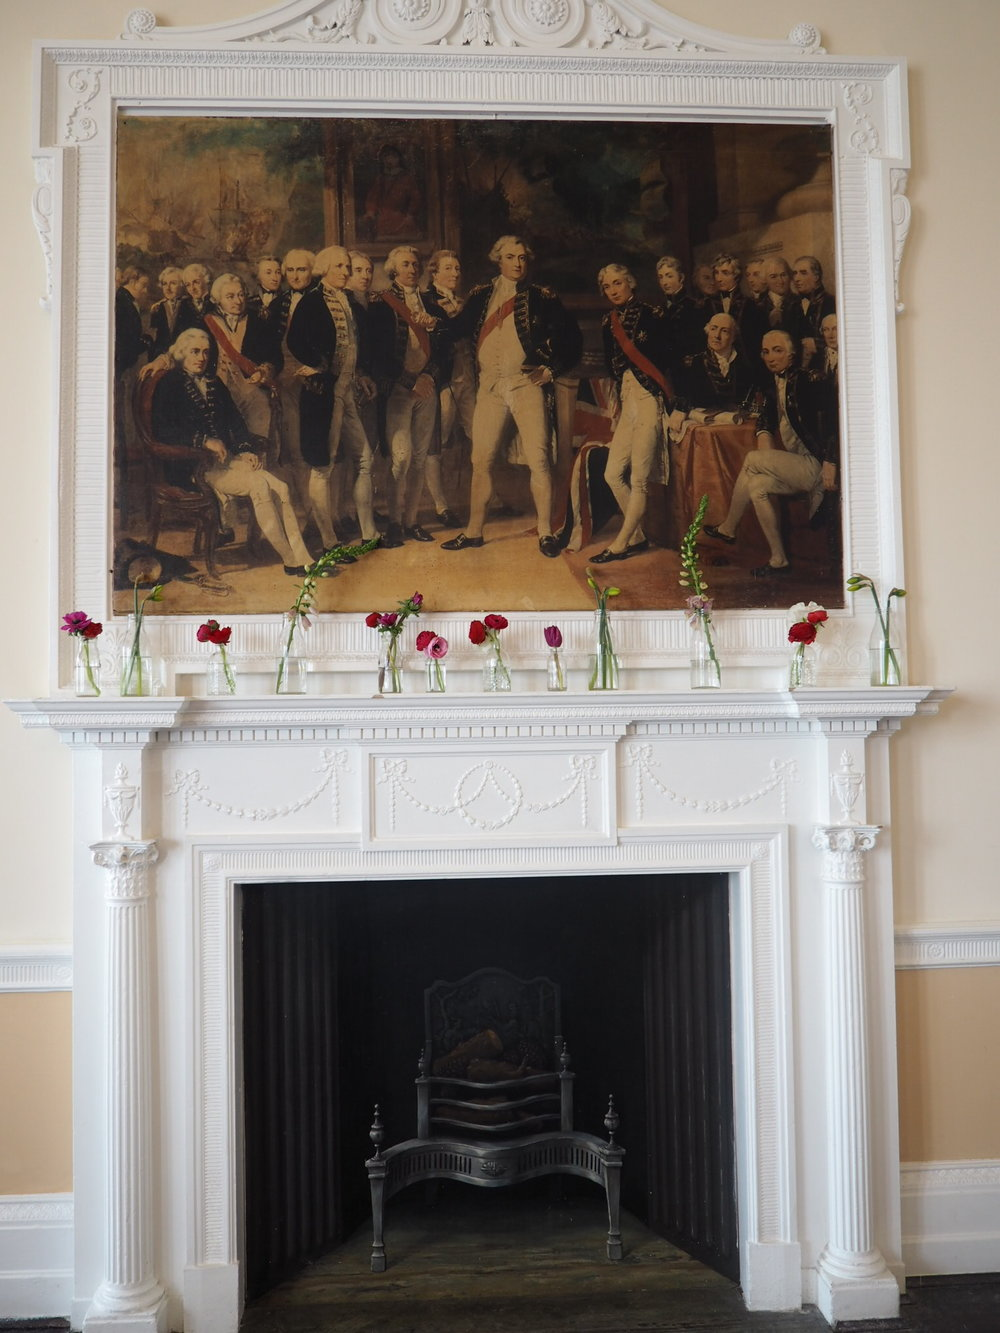 trafalgar tavern greenwich fireplace with flowers in bottles